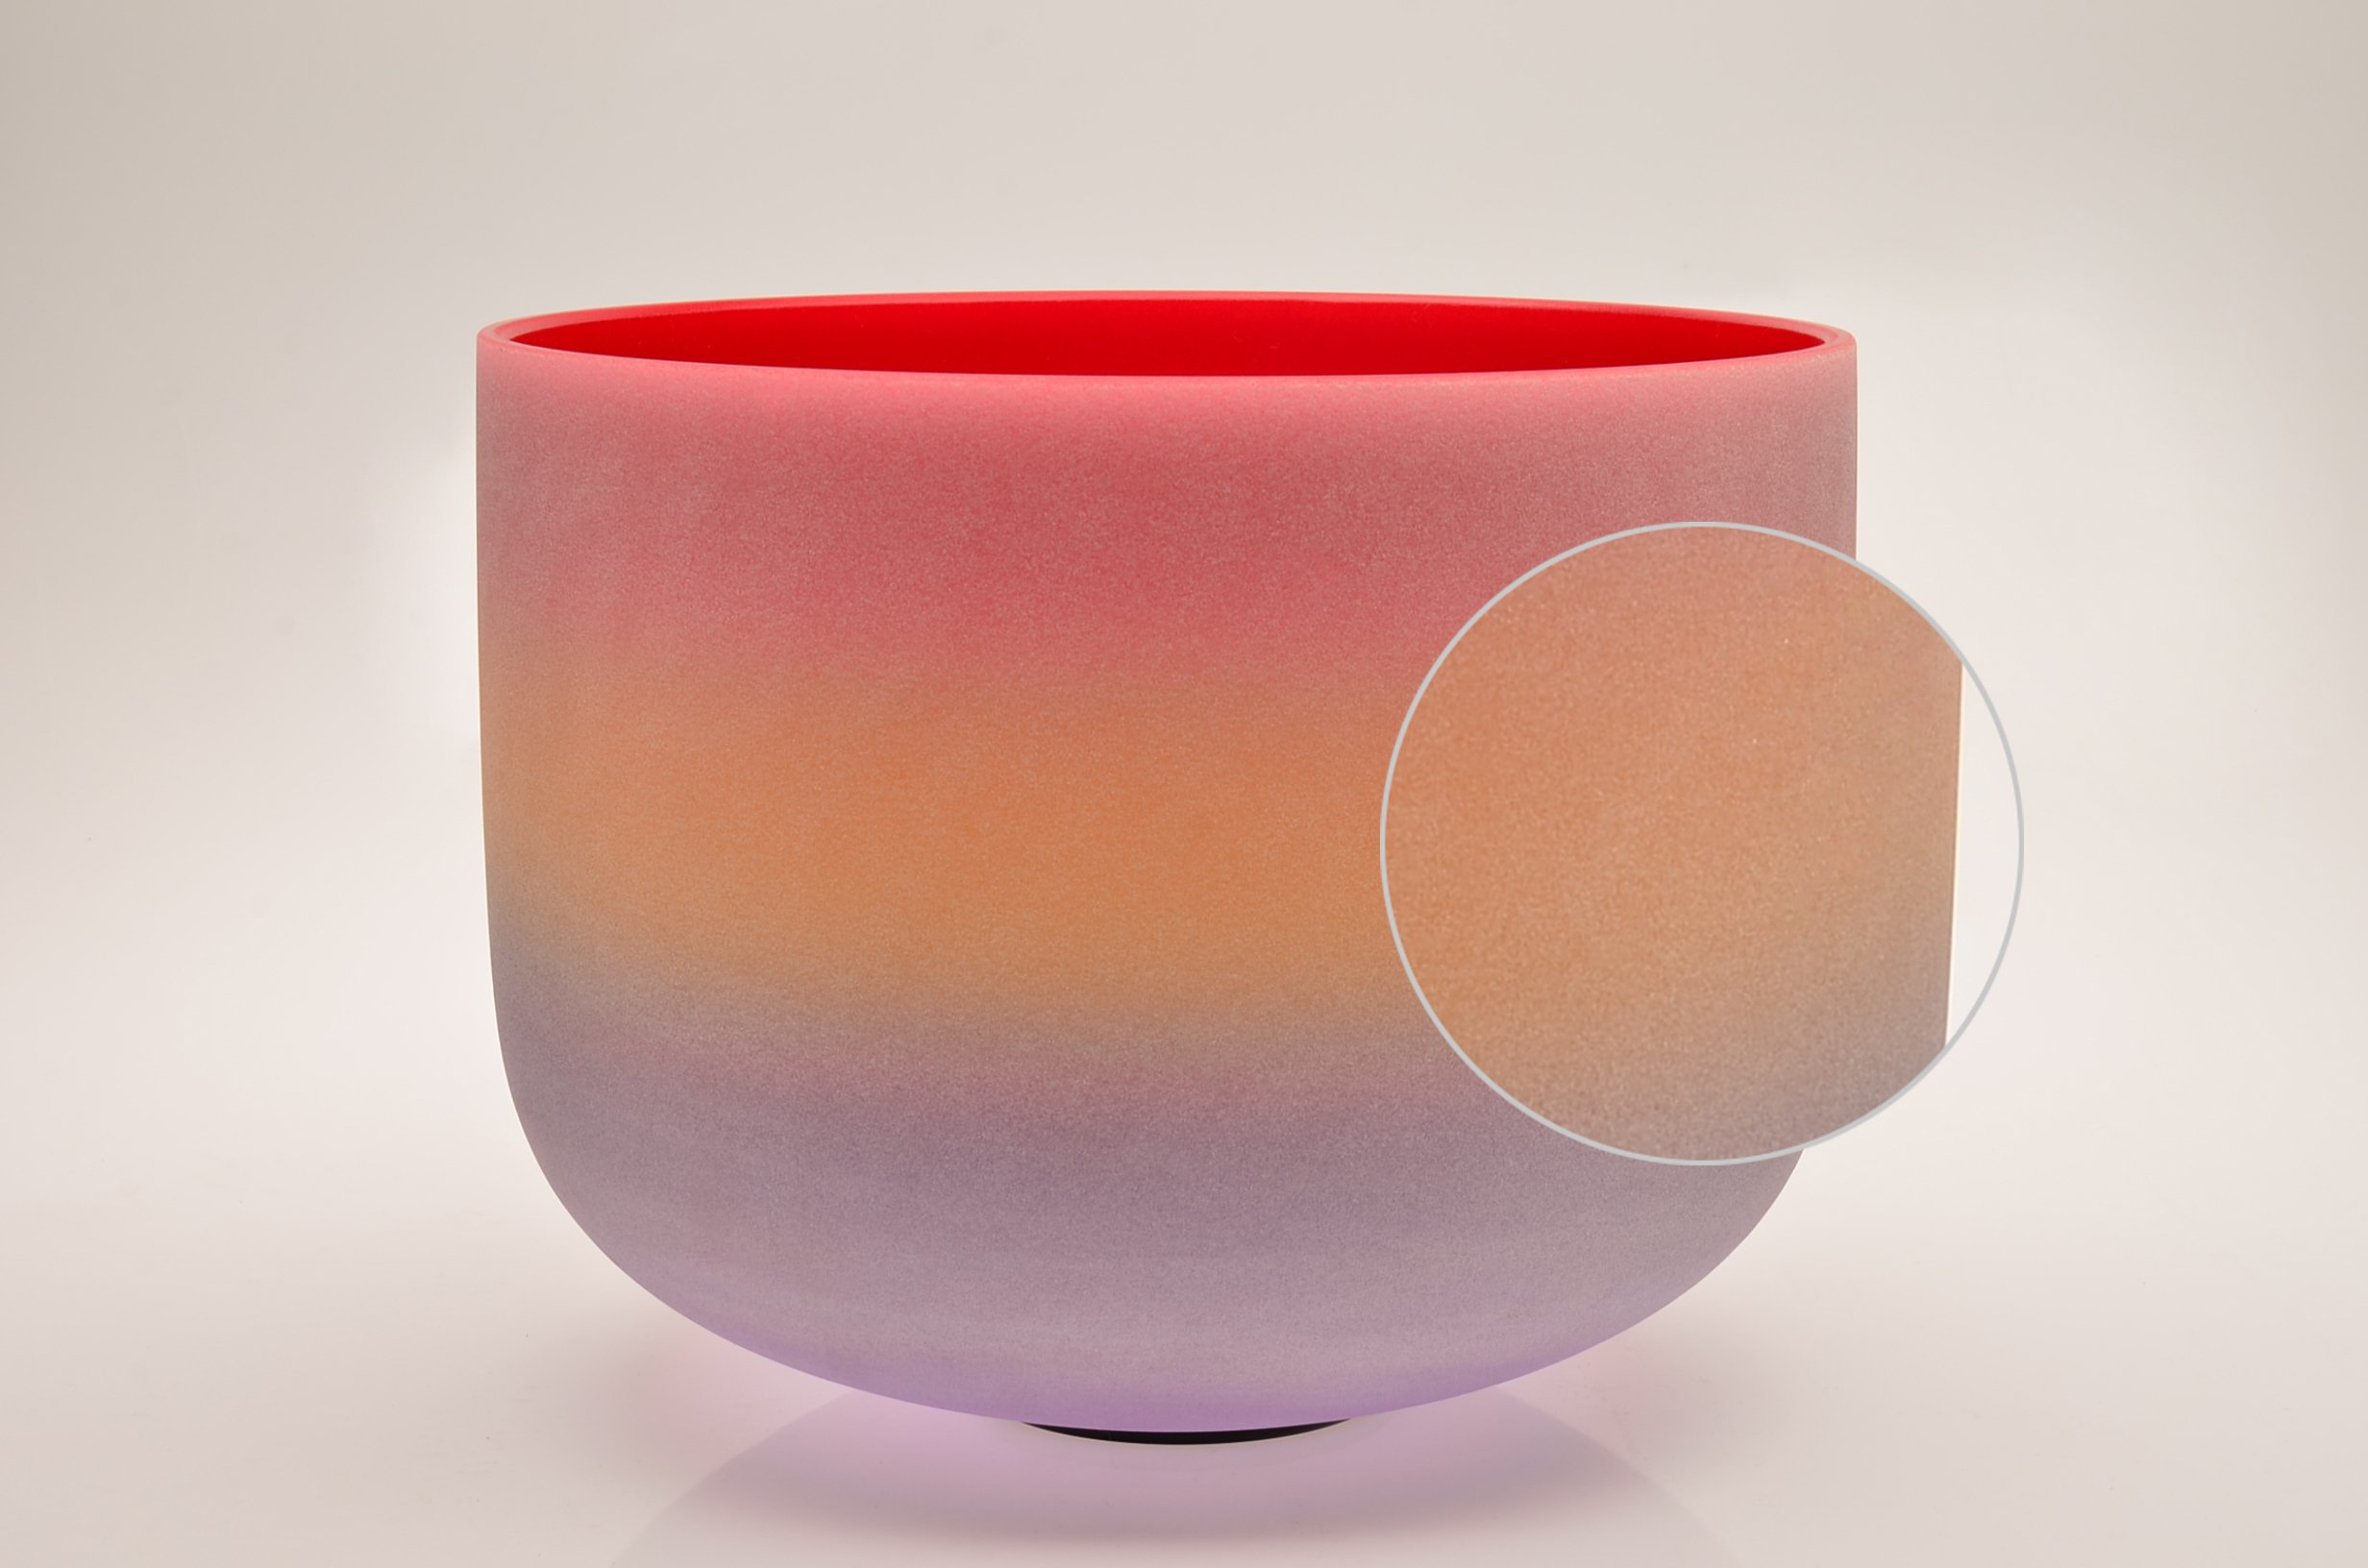 TOPFUND Singing Bowls C Note Crystal Singing Bowl Root Chakra Rainbow Color 12 inch (O-Ring and Rubber Mallet Included) by TOPFUND (Image #5)